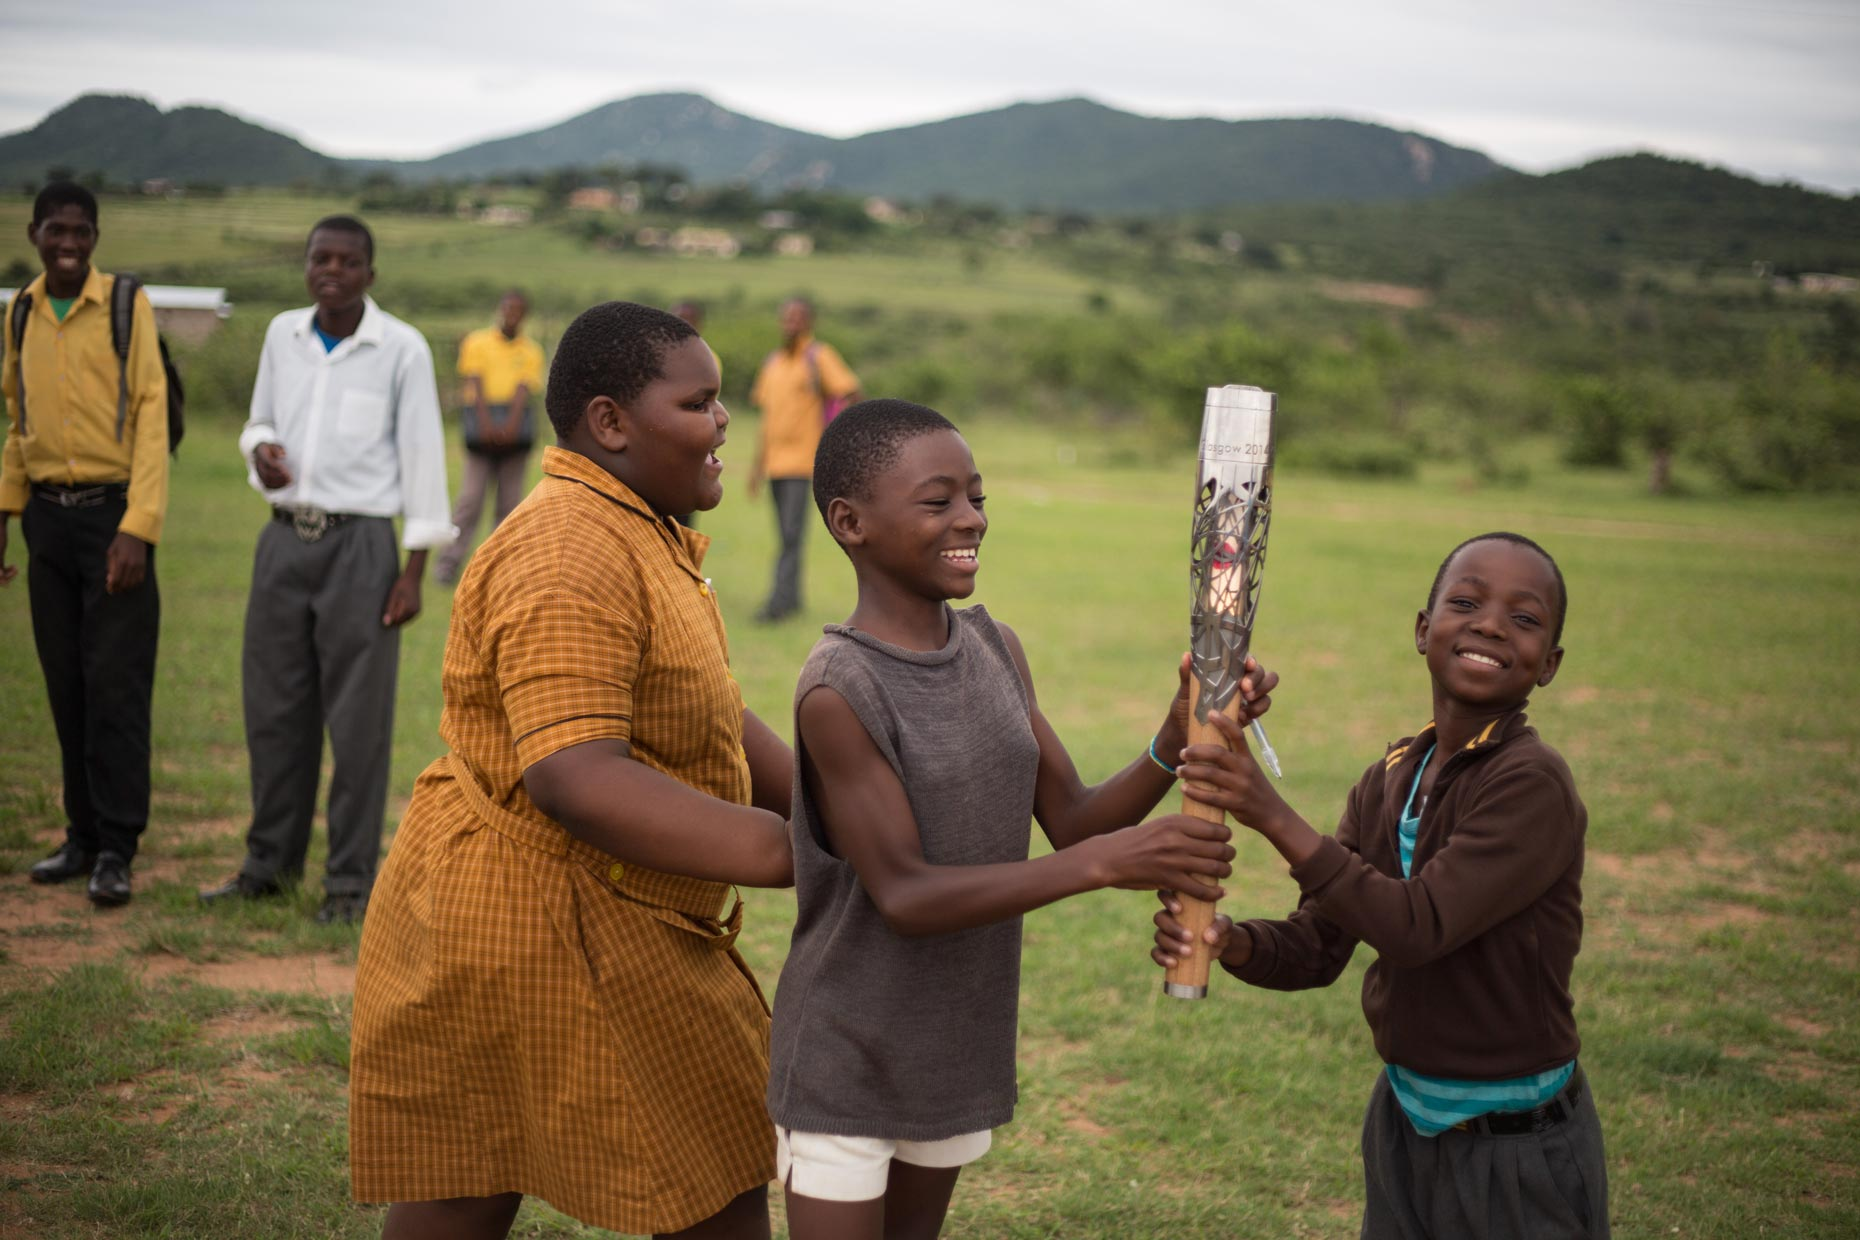 Children in Swaziland with Queen